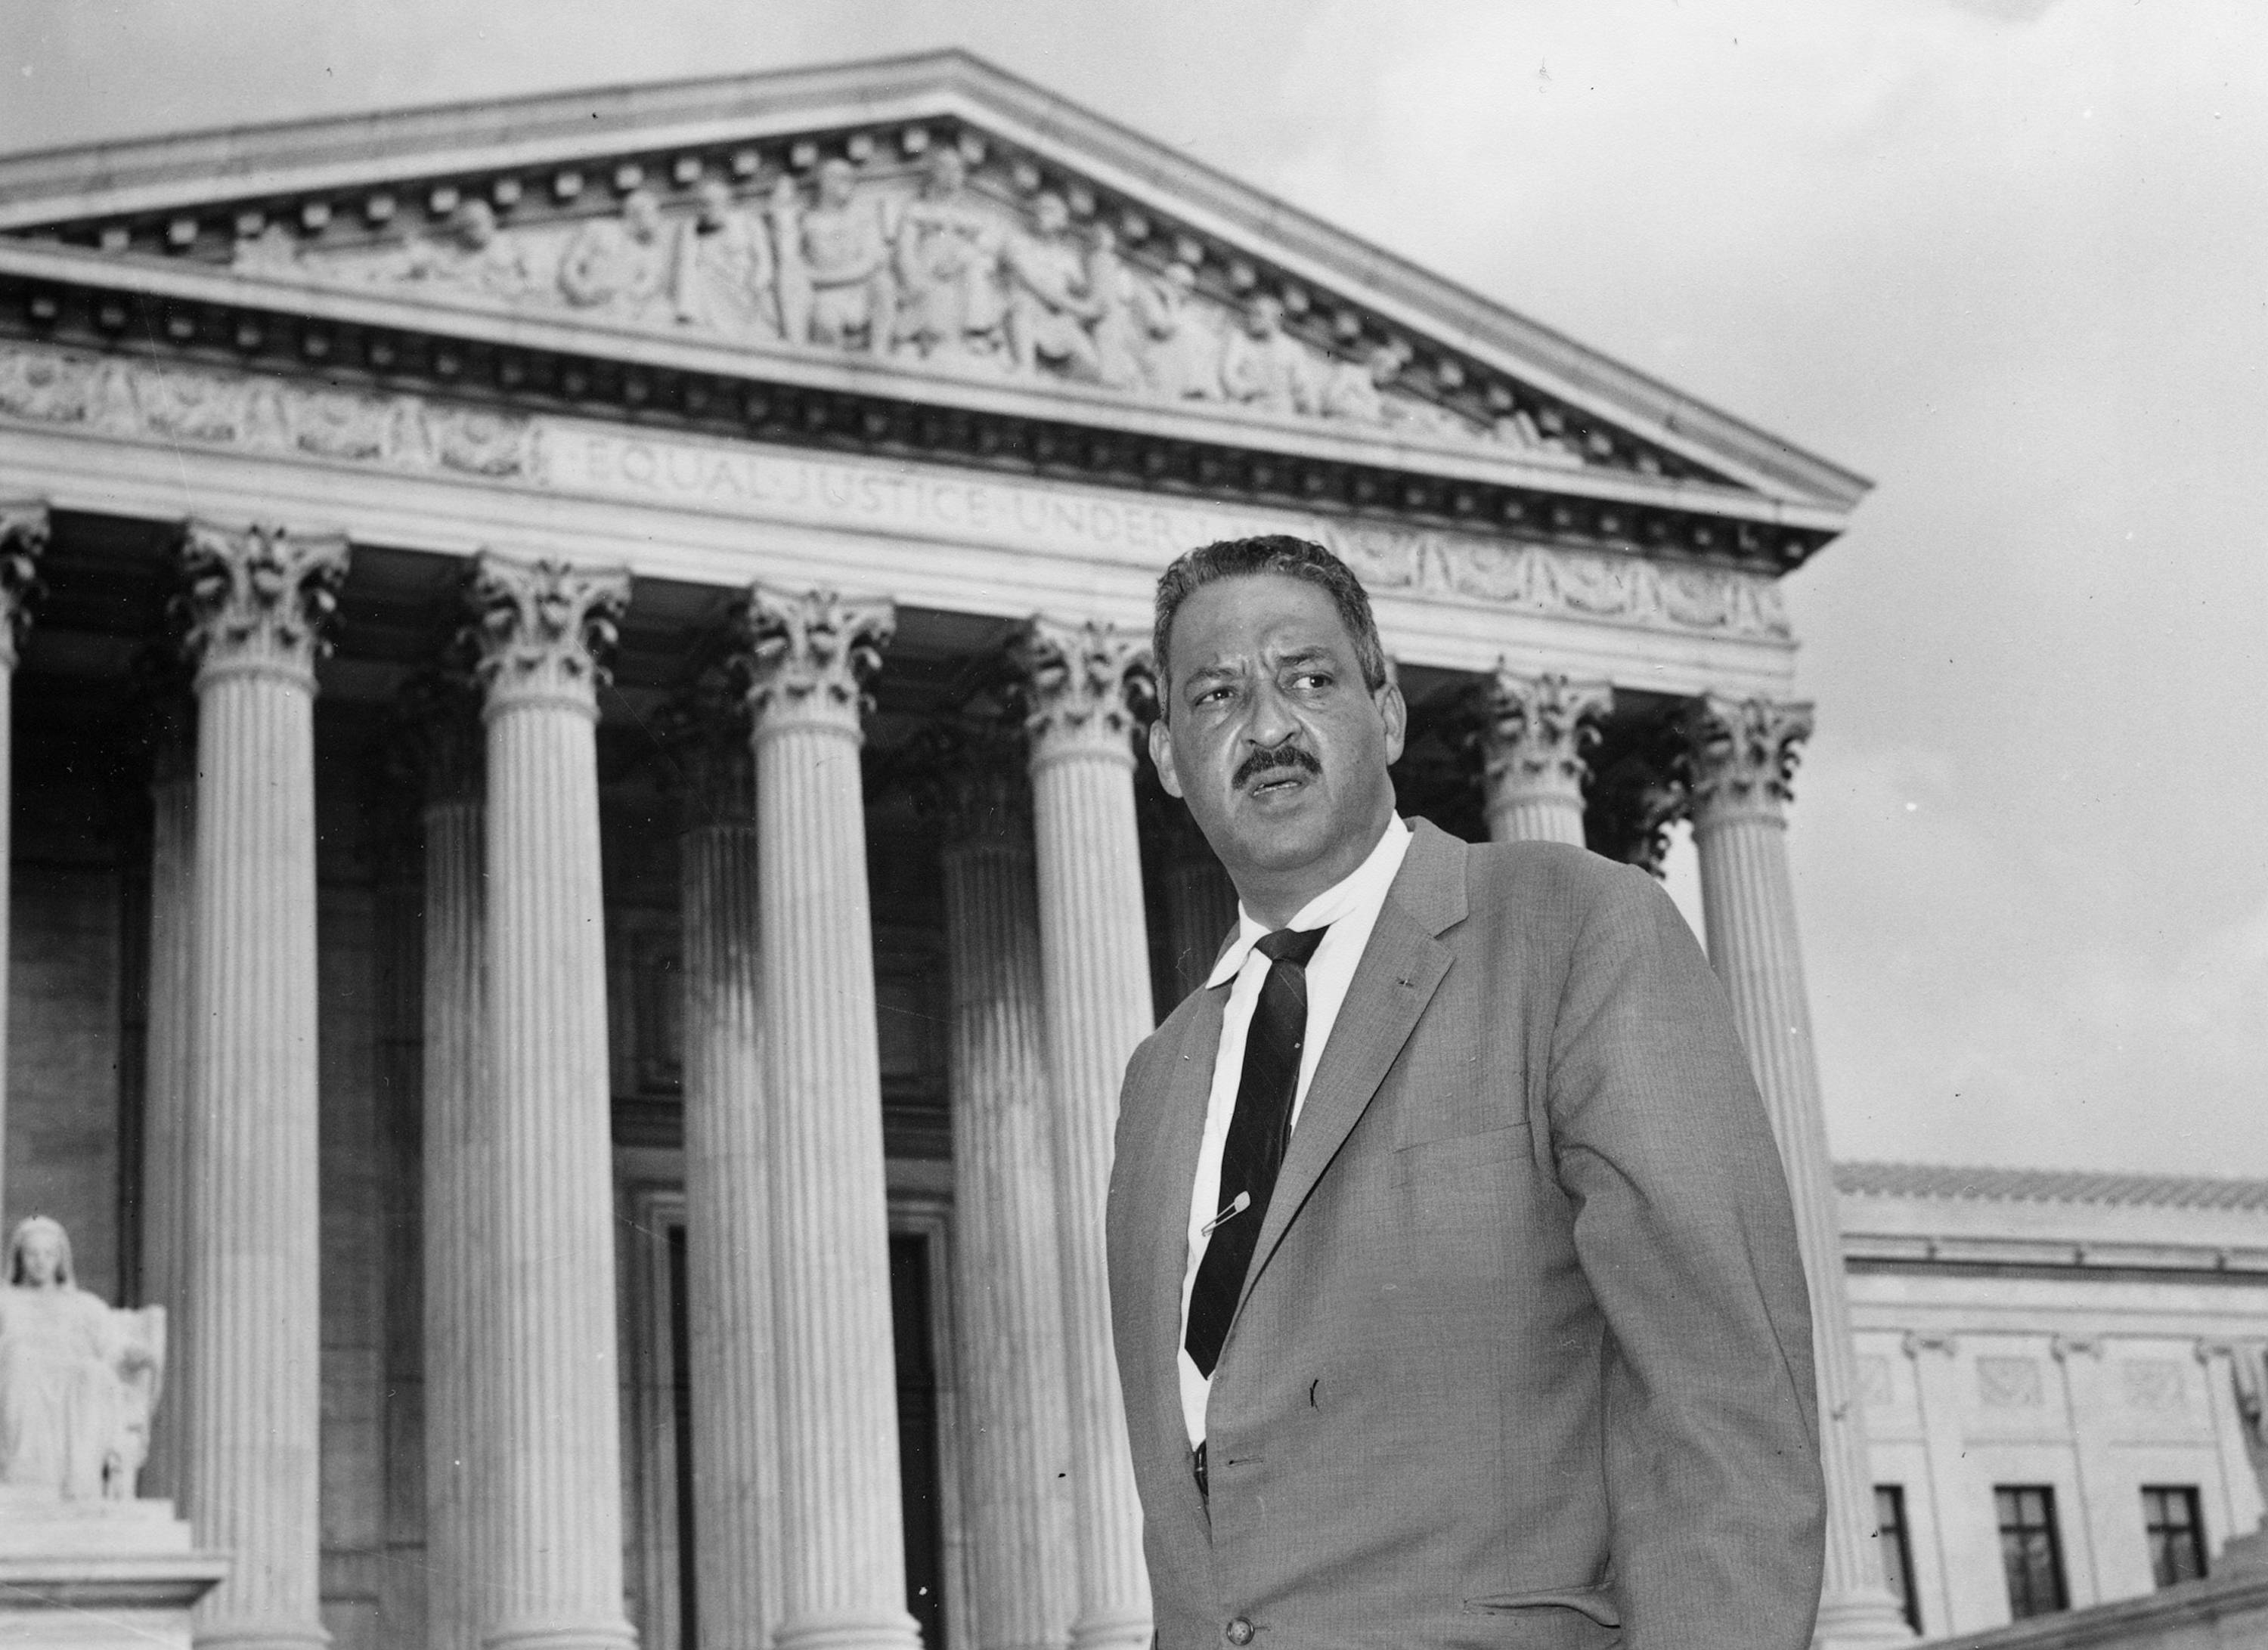 Thurgood Marshall, the head of the NAACP's legal arm who argued part of the Brown case, went on to become the Supreme Court's first black justice in 1967.